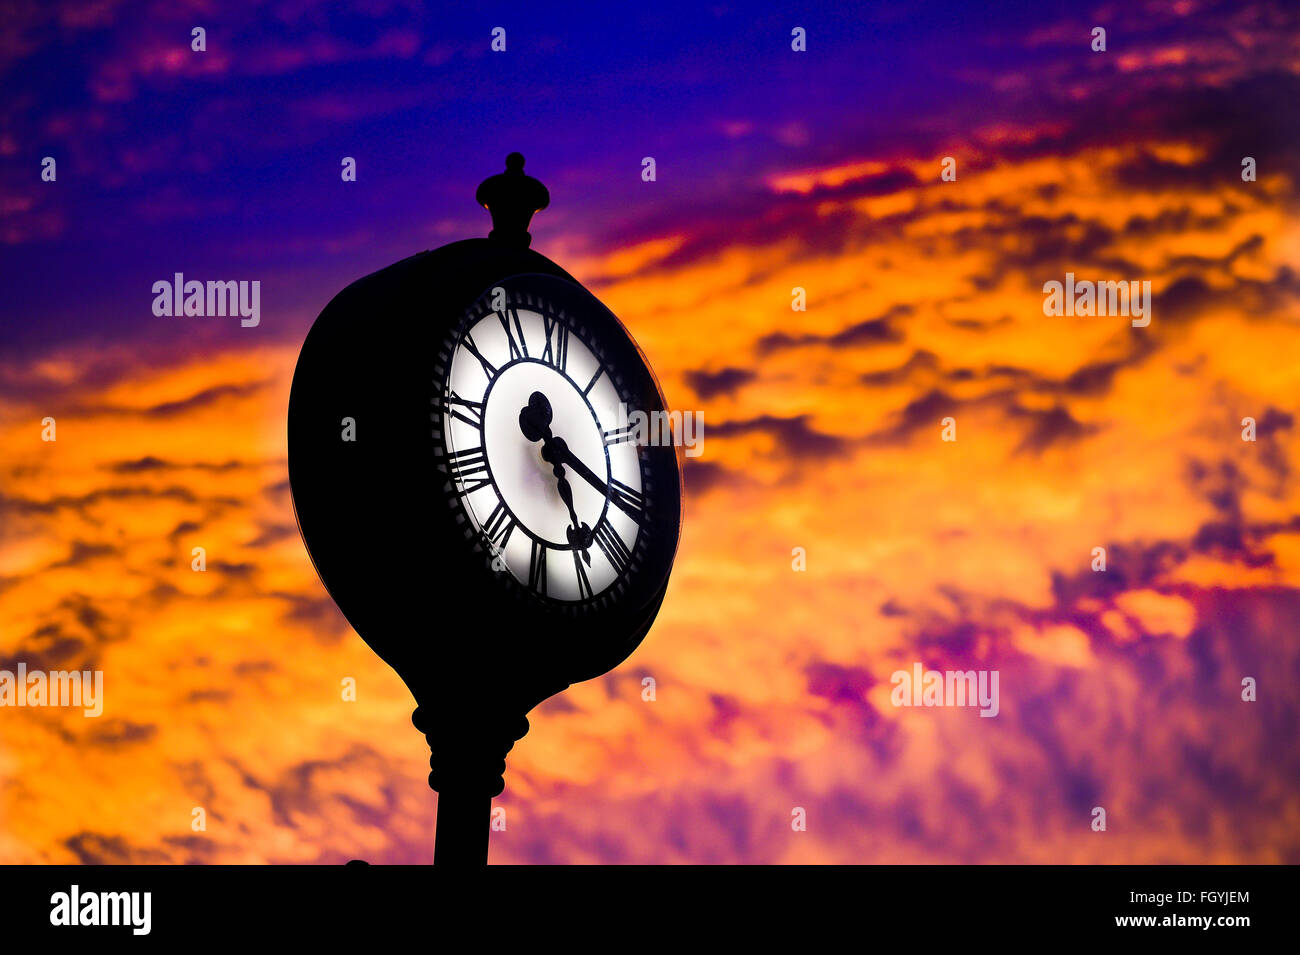 Public clock against a strong sunset showing the time on a roman numeral face of quarter past five. - Stock Image